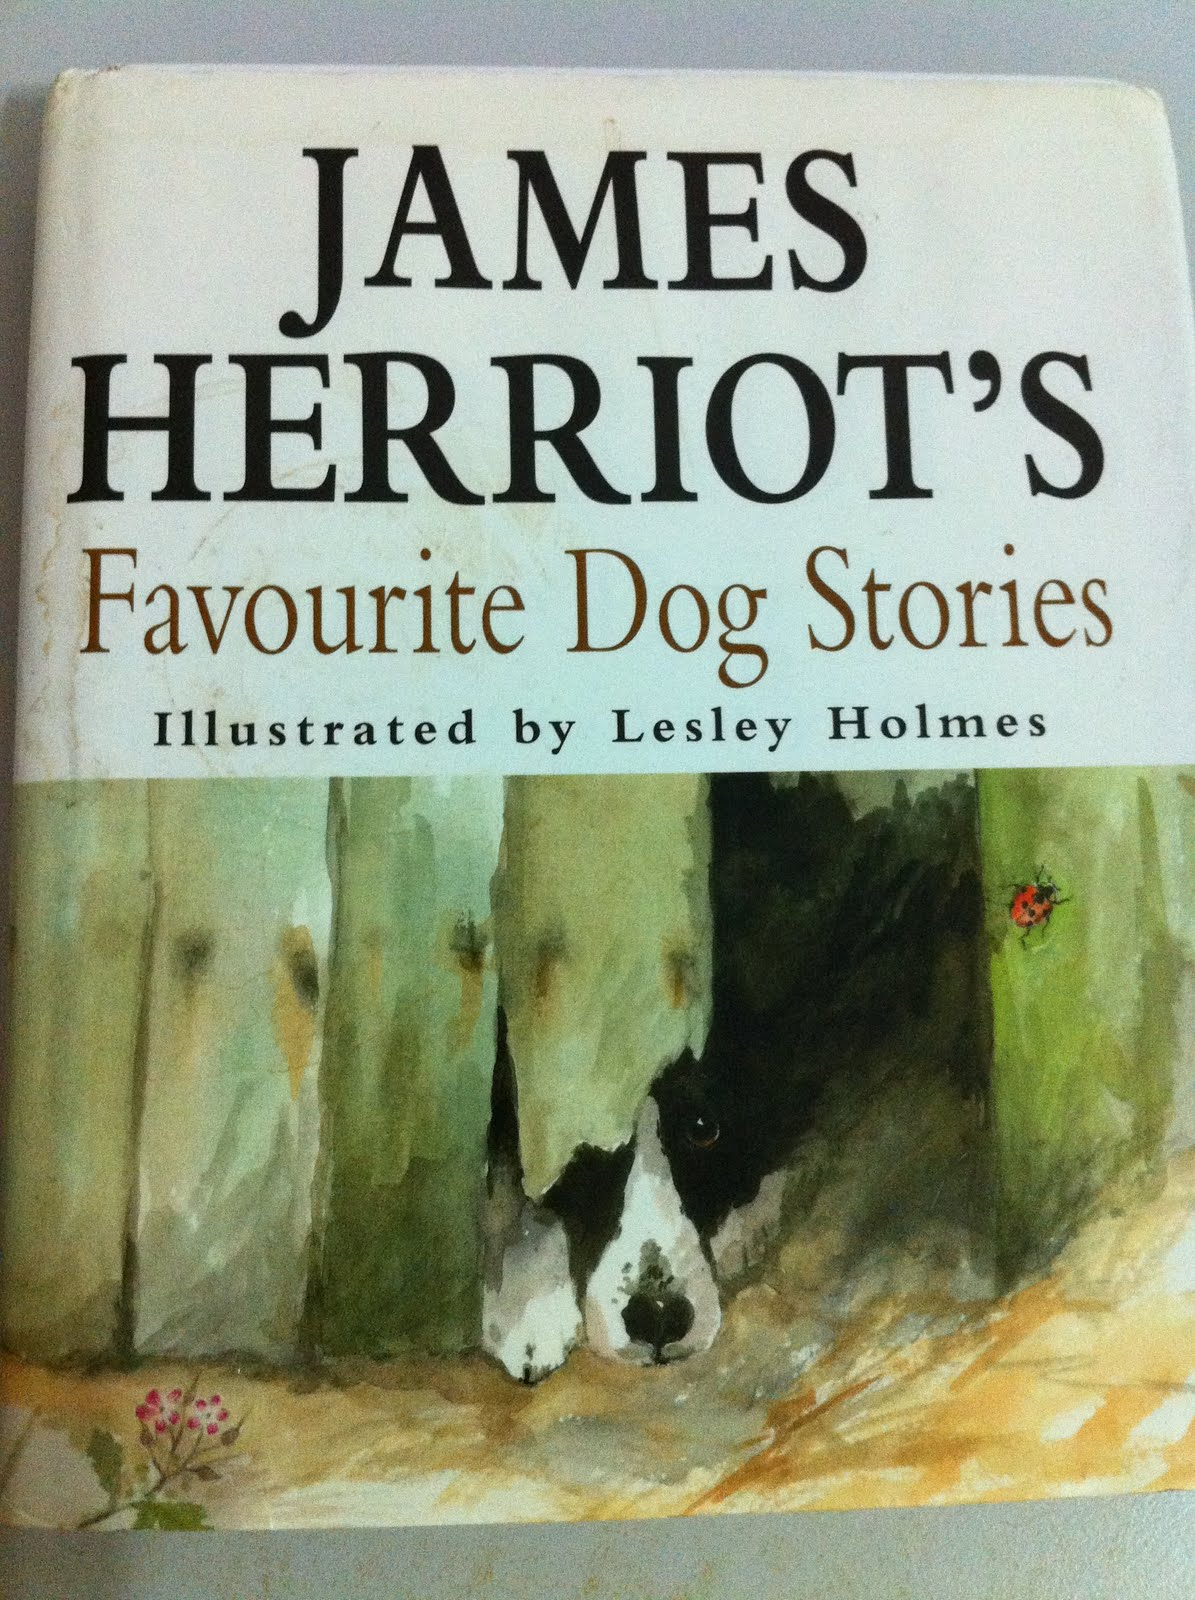 a collection of james herriots favorite dog stories James herriot's cat stories, with more than a million copies in print, became his most popular hardcover ever here are the complete dog stories form the first four volumes of his memoirs: a handsome collection of tales (some available nowhere else in america) that will warm the hearts of.